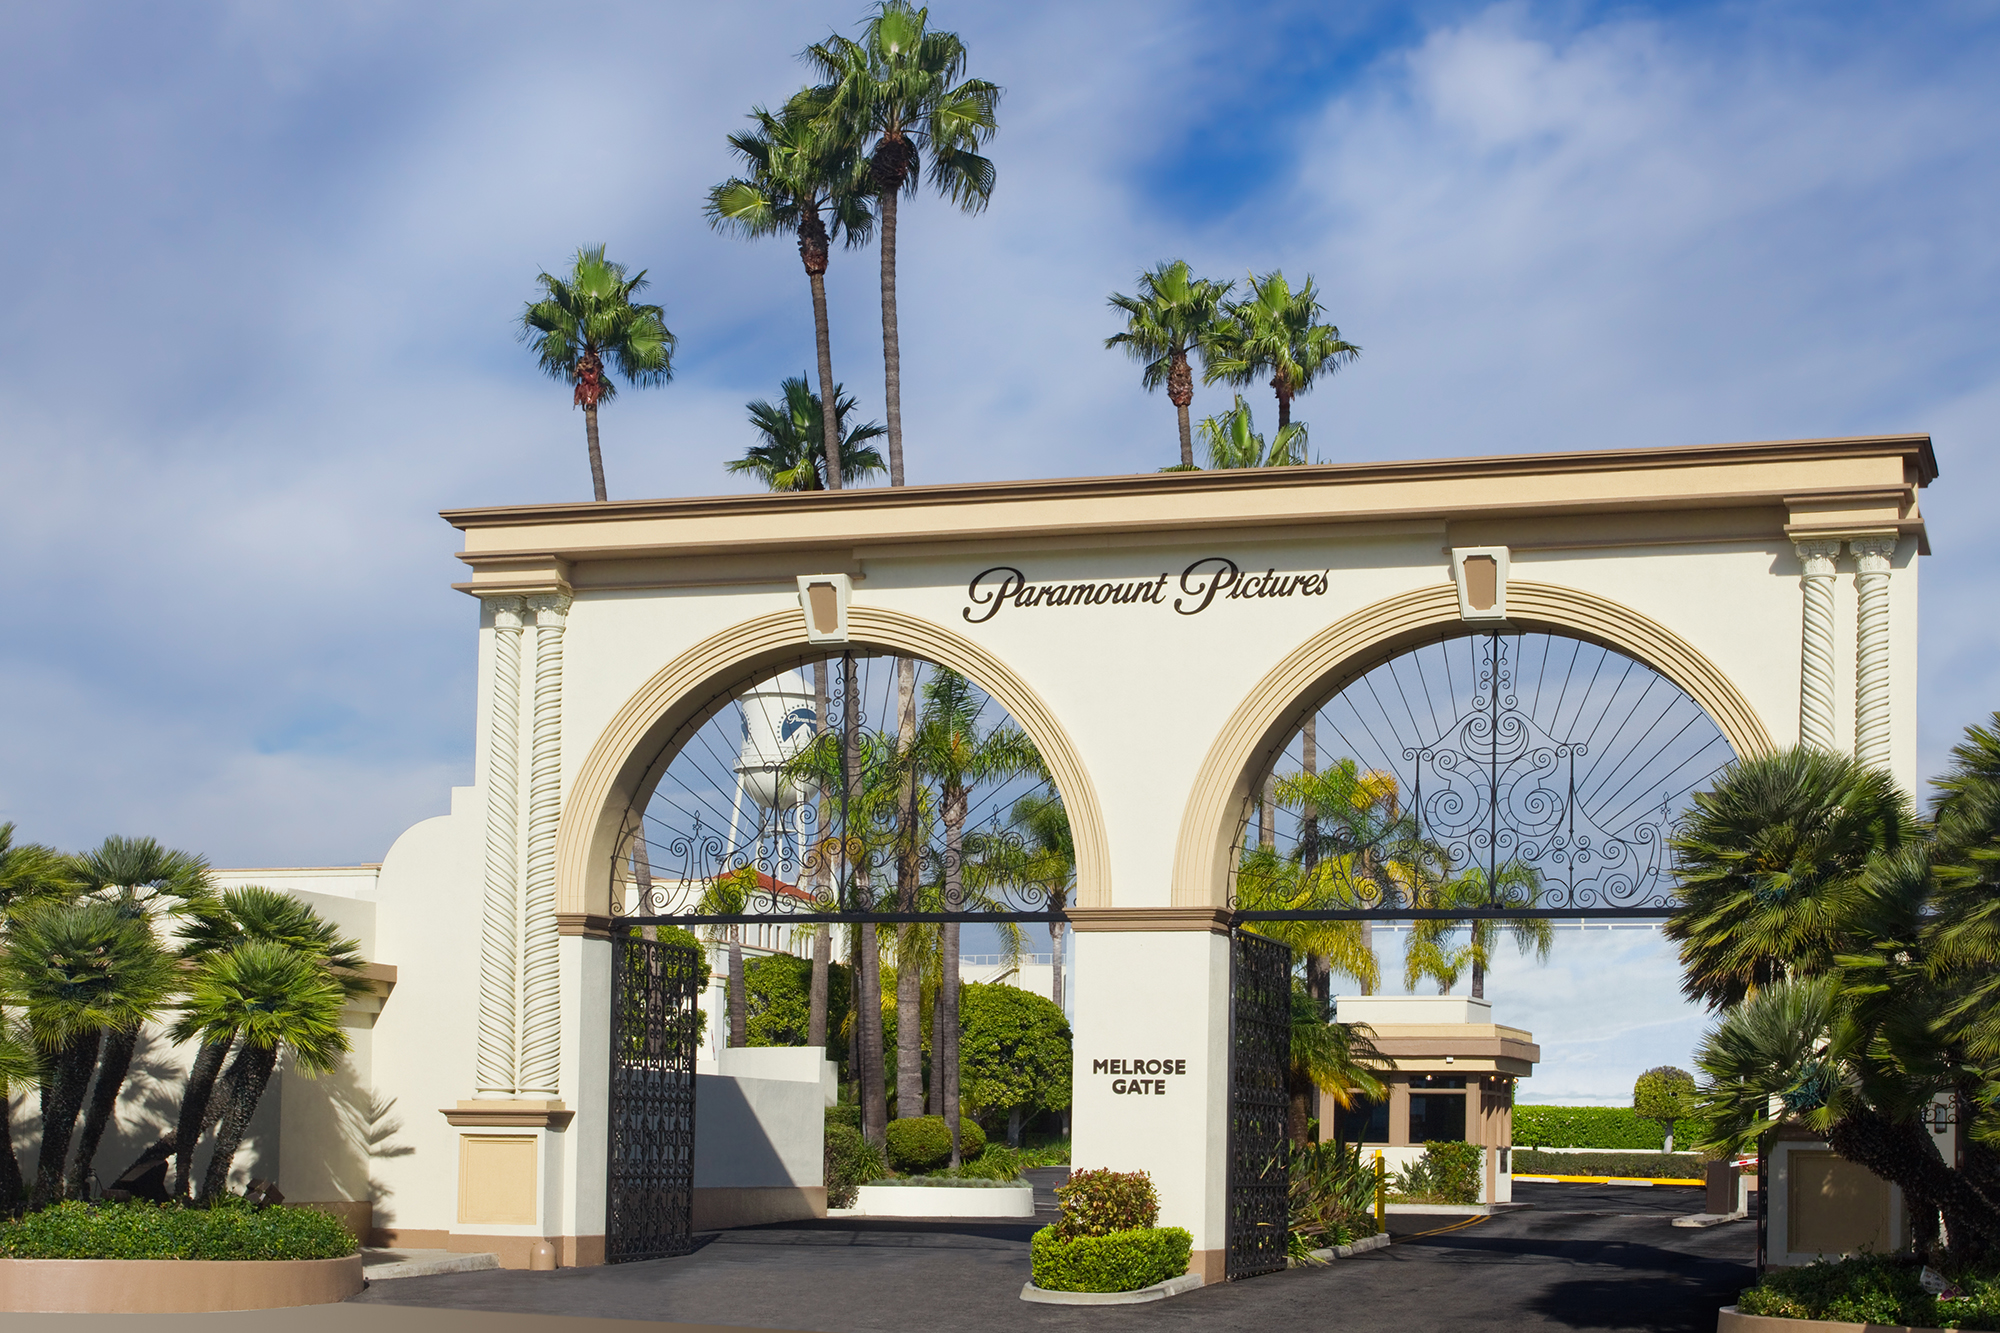 Paramount Pictures Studios will host the first-ever Frieze Los Angeles art fair.